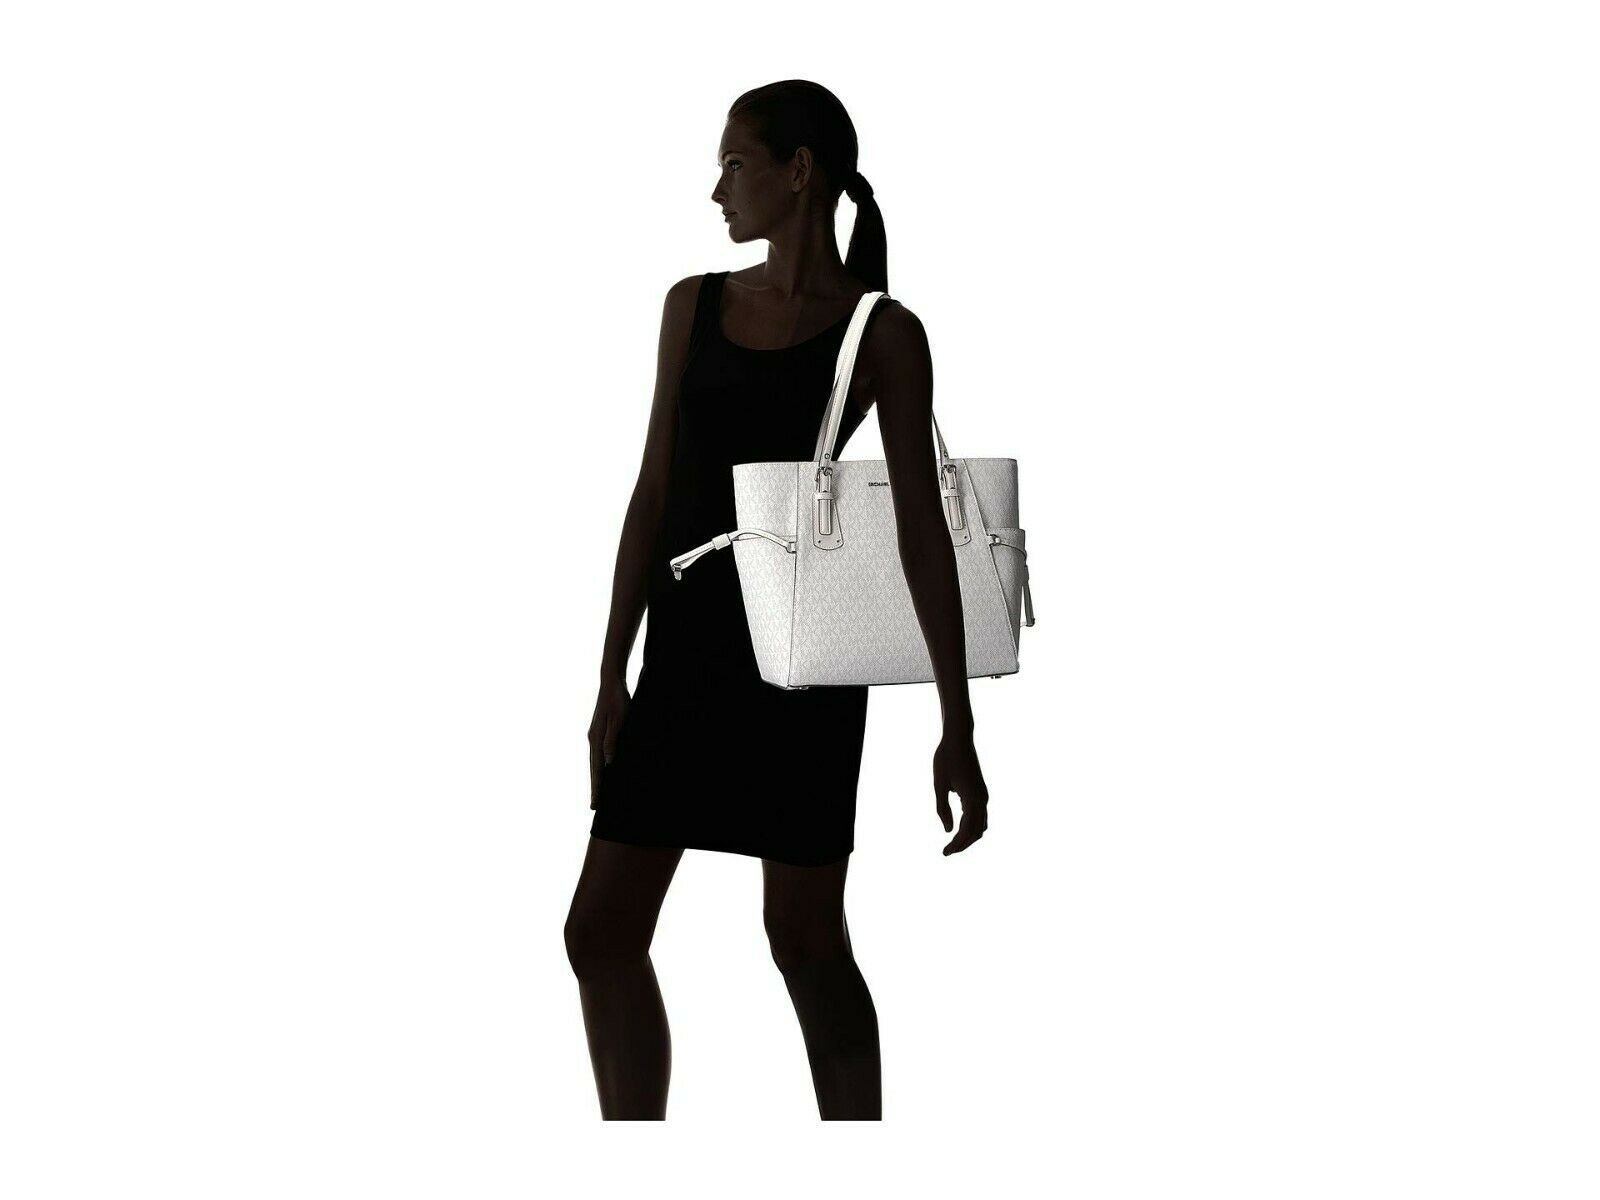 NWT MICHAEL KORS VOYAGER SIGNATURE EAST WEST TOTE BRIGHT WHITE image 10